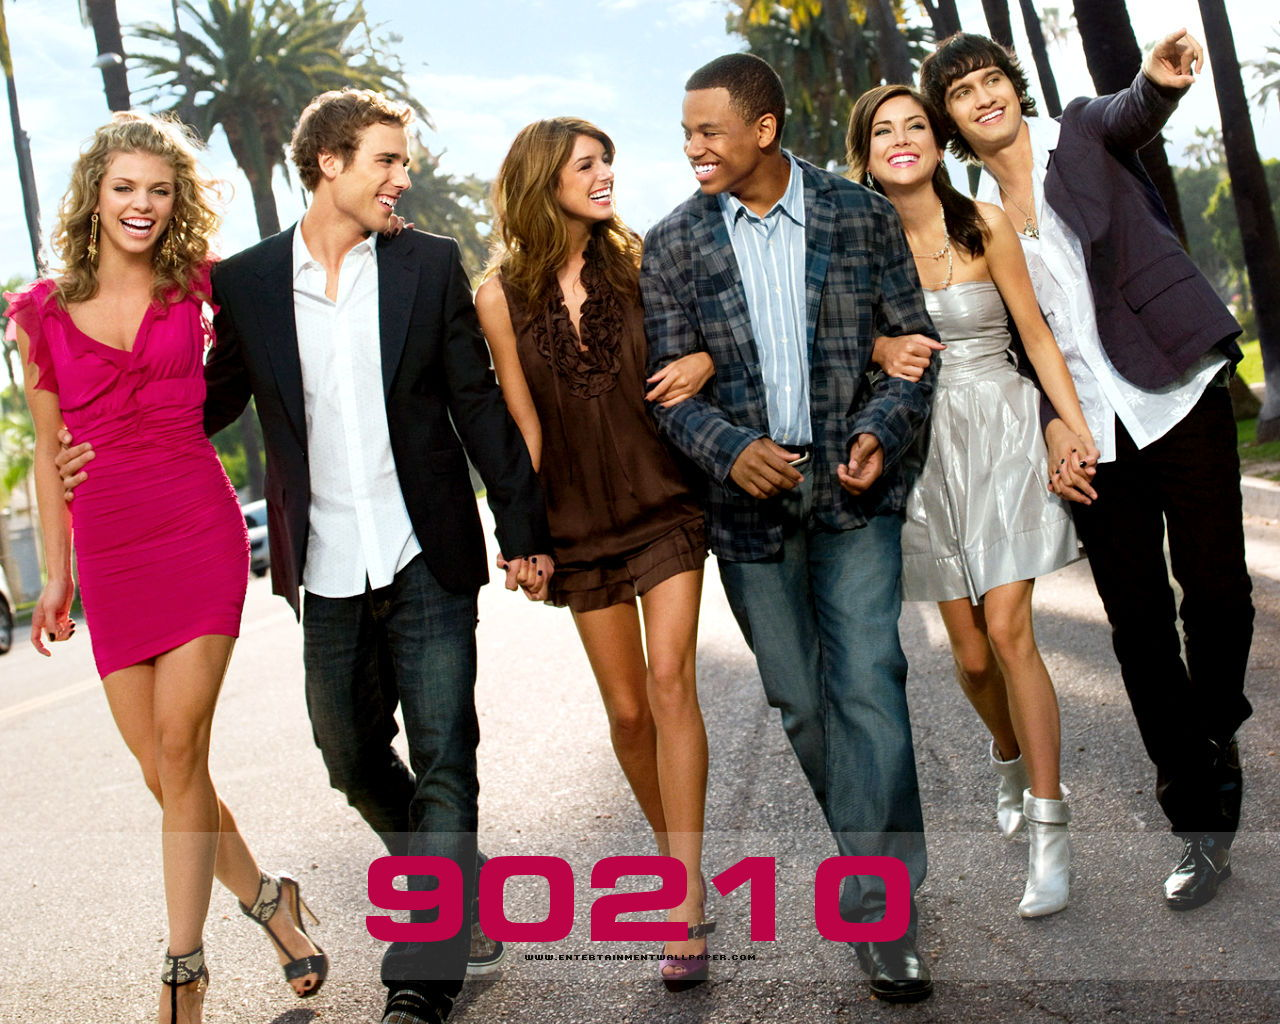 90210 series download